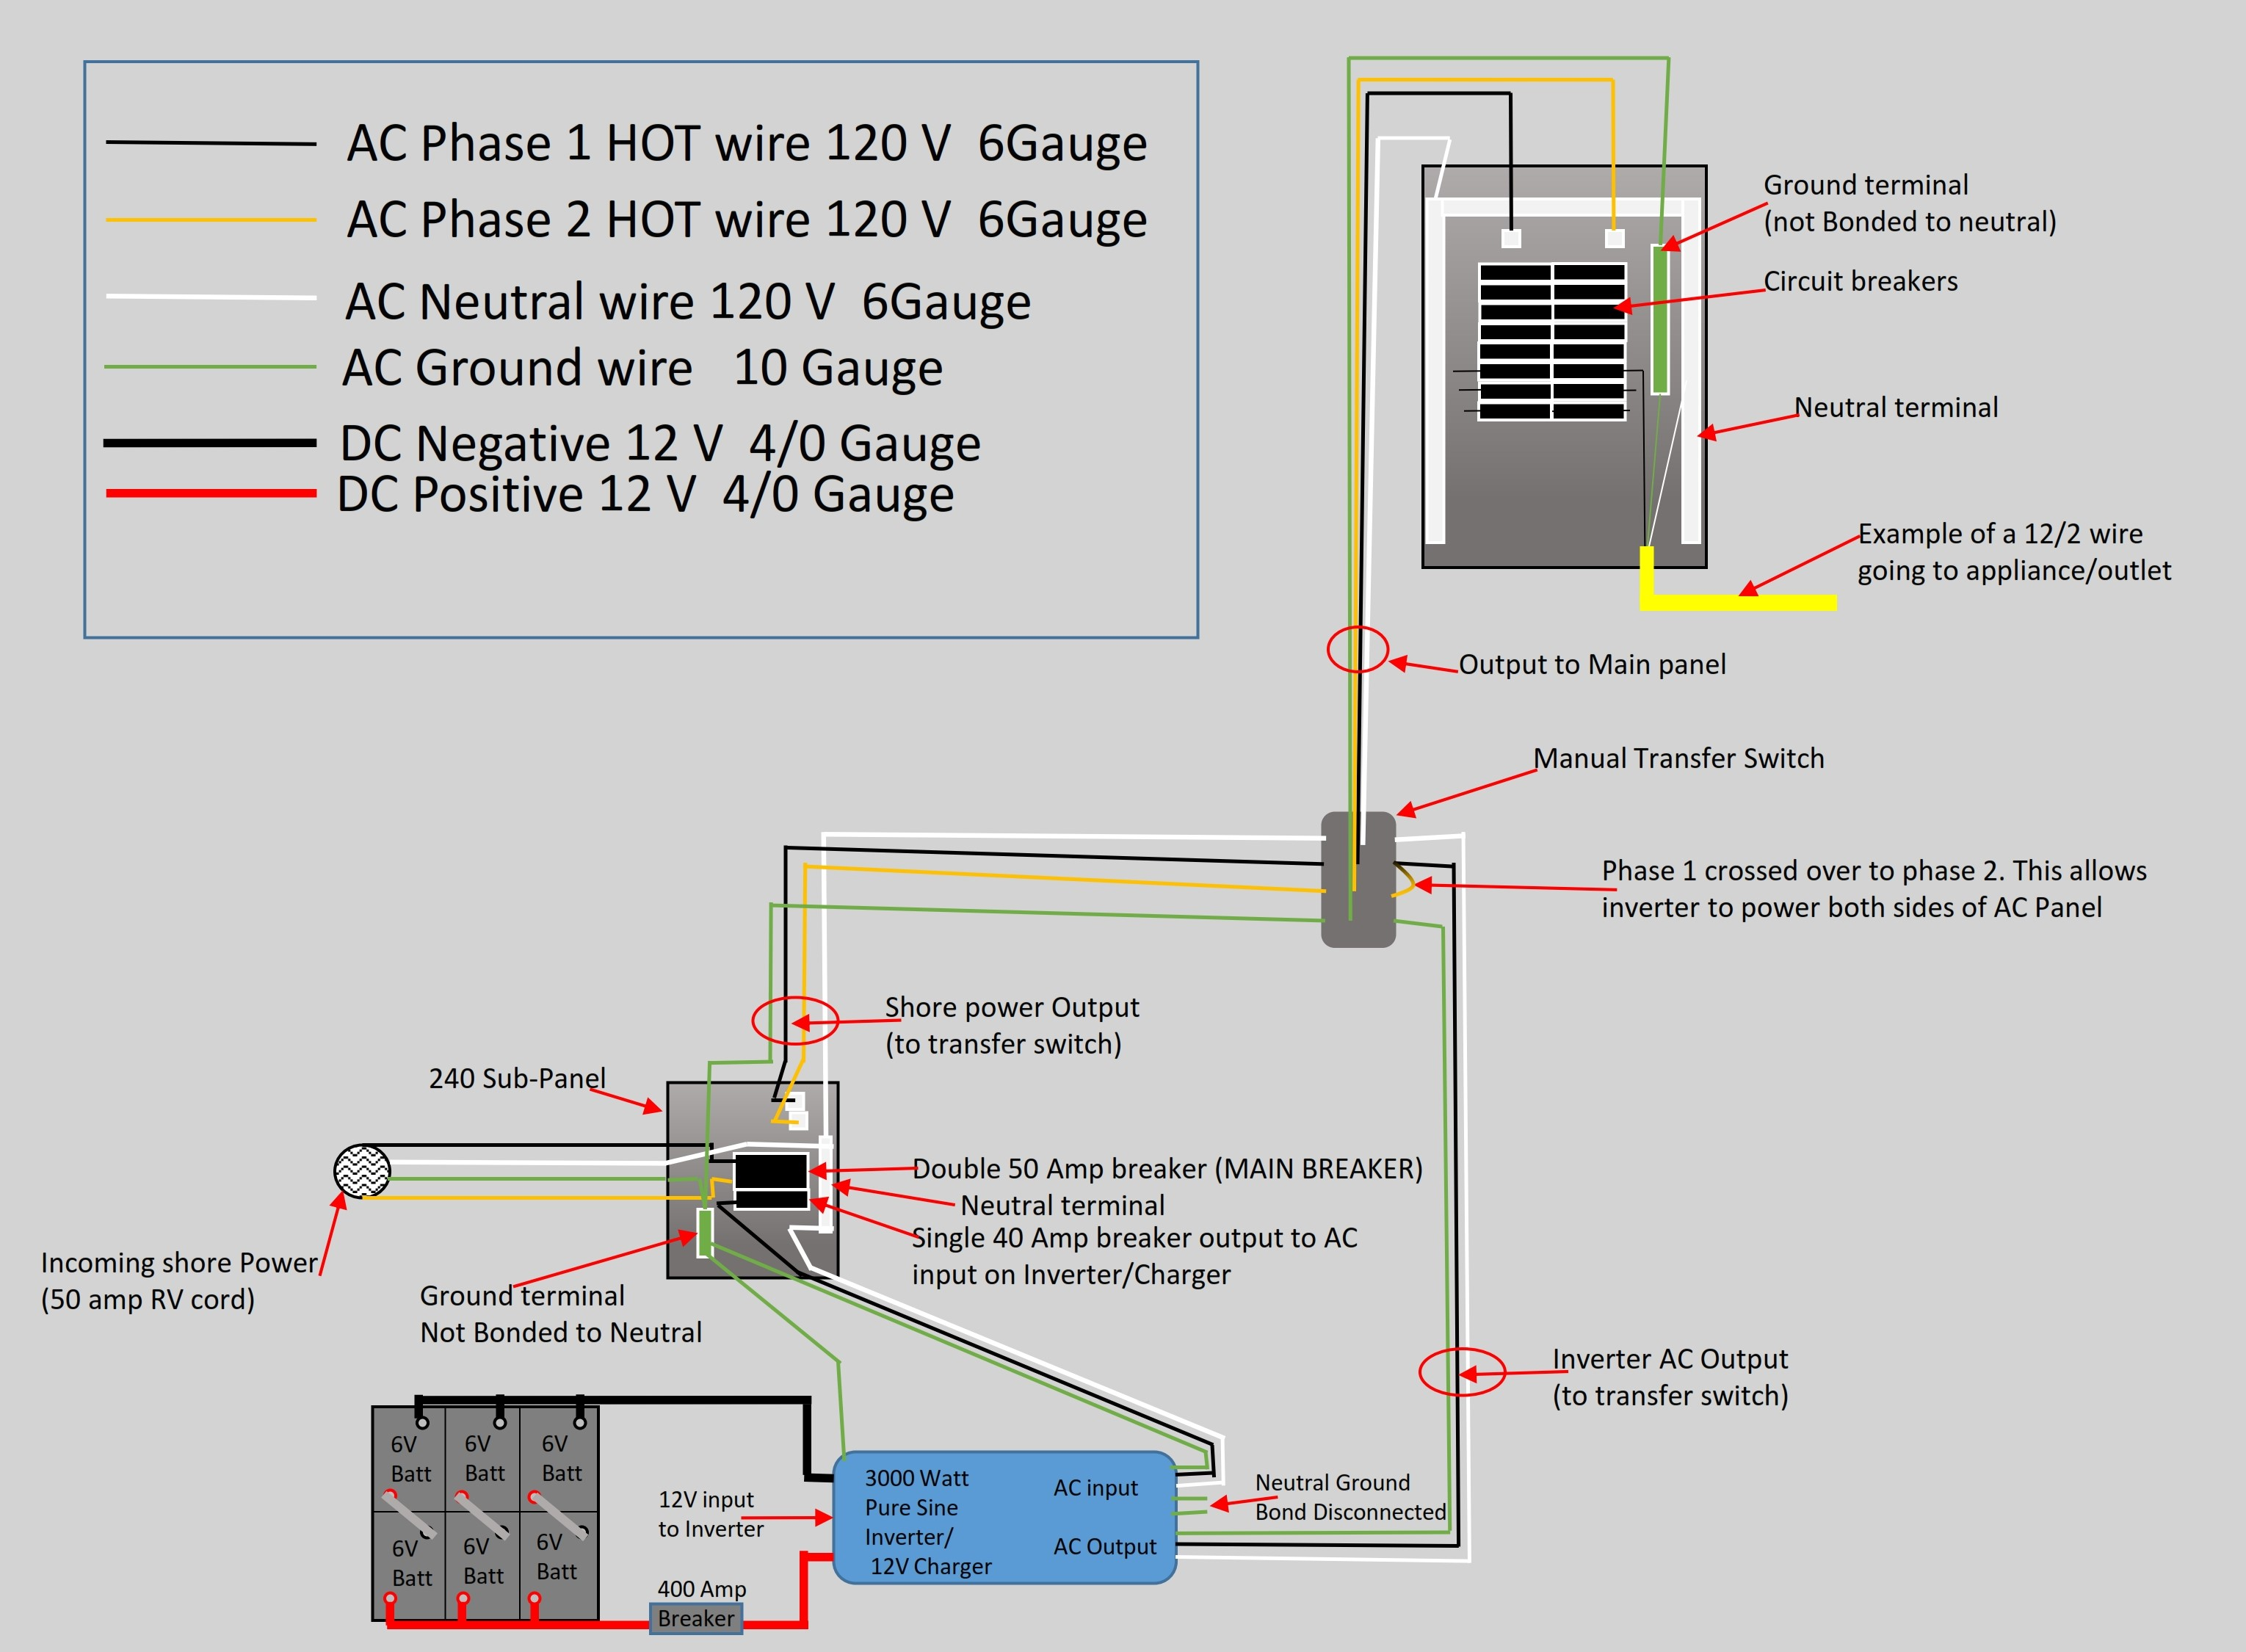 hight resolution of 240 single phase wiring diagram for panelboard wiring library rh 58 codingcommunity de 120 208 volt wiring diagram 240v single phase wiring diagram